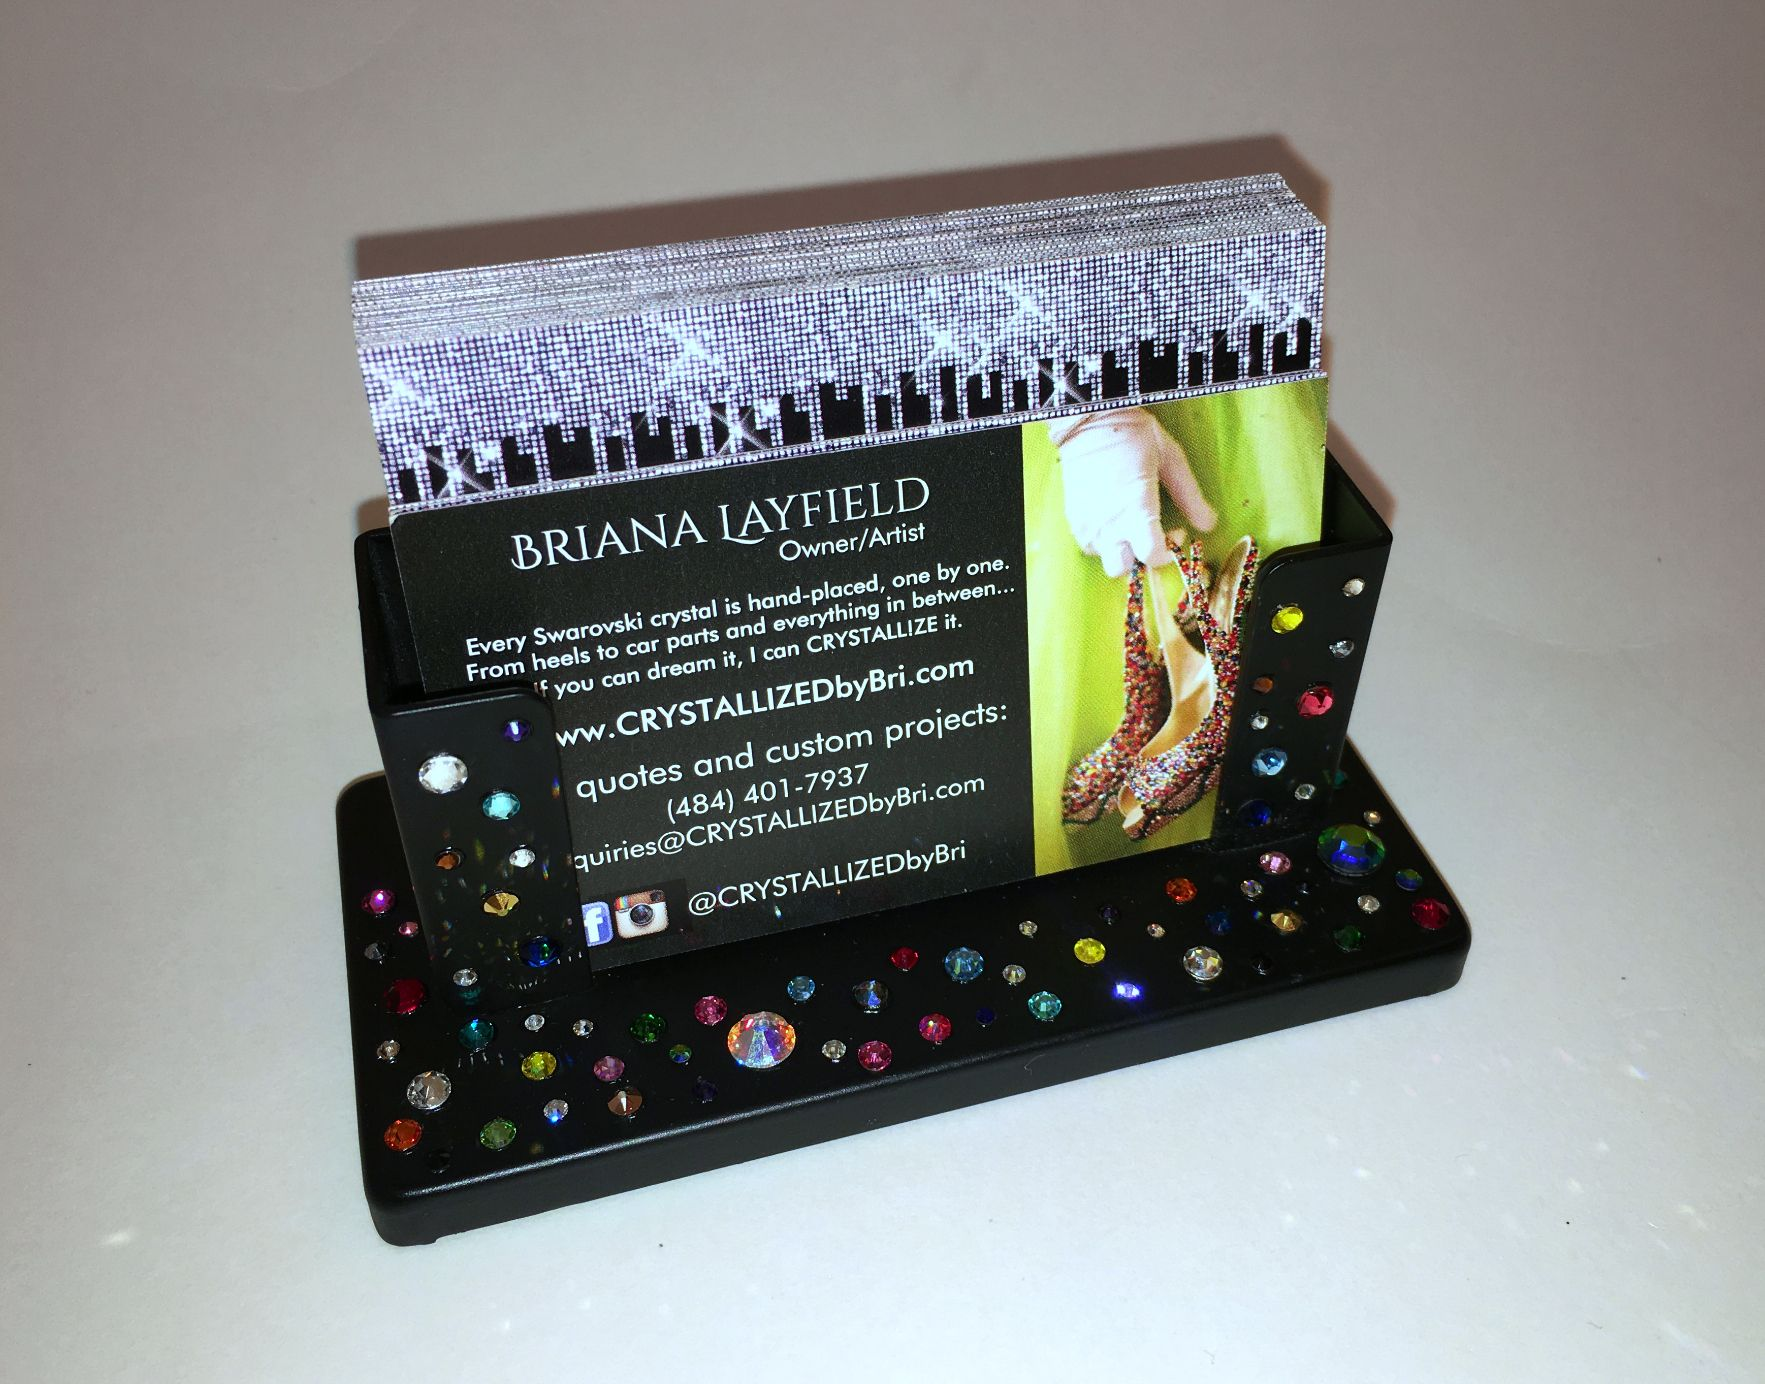 crystall zed desk business card holder crystall zed by bri